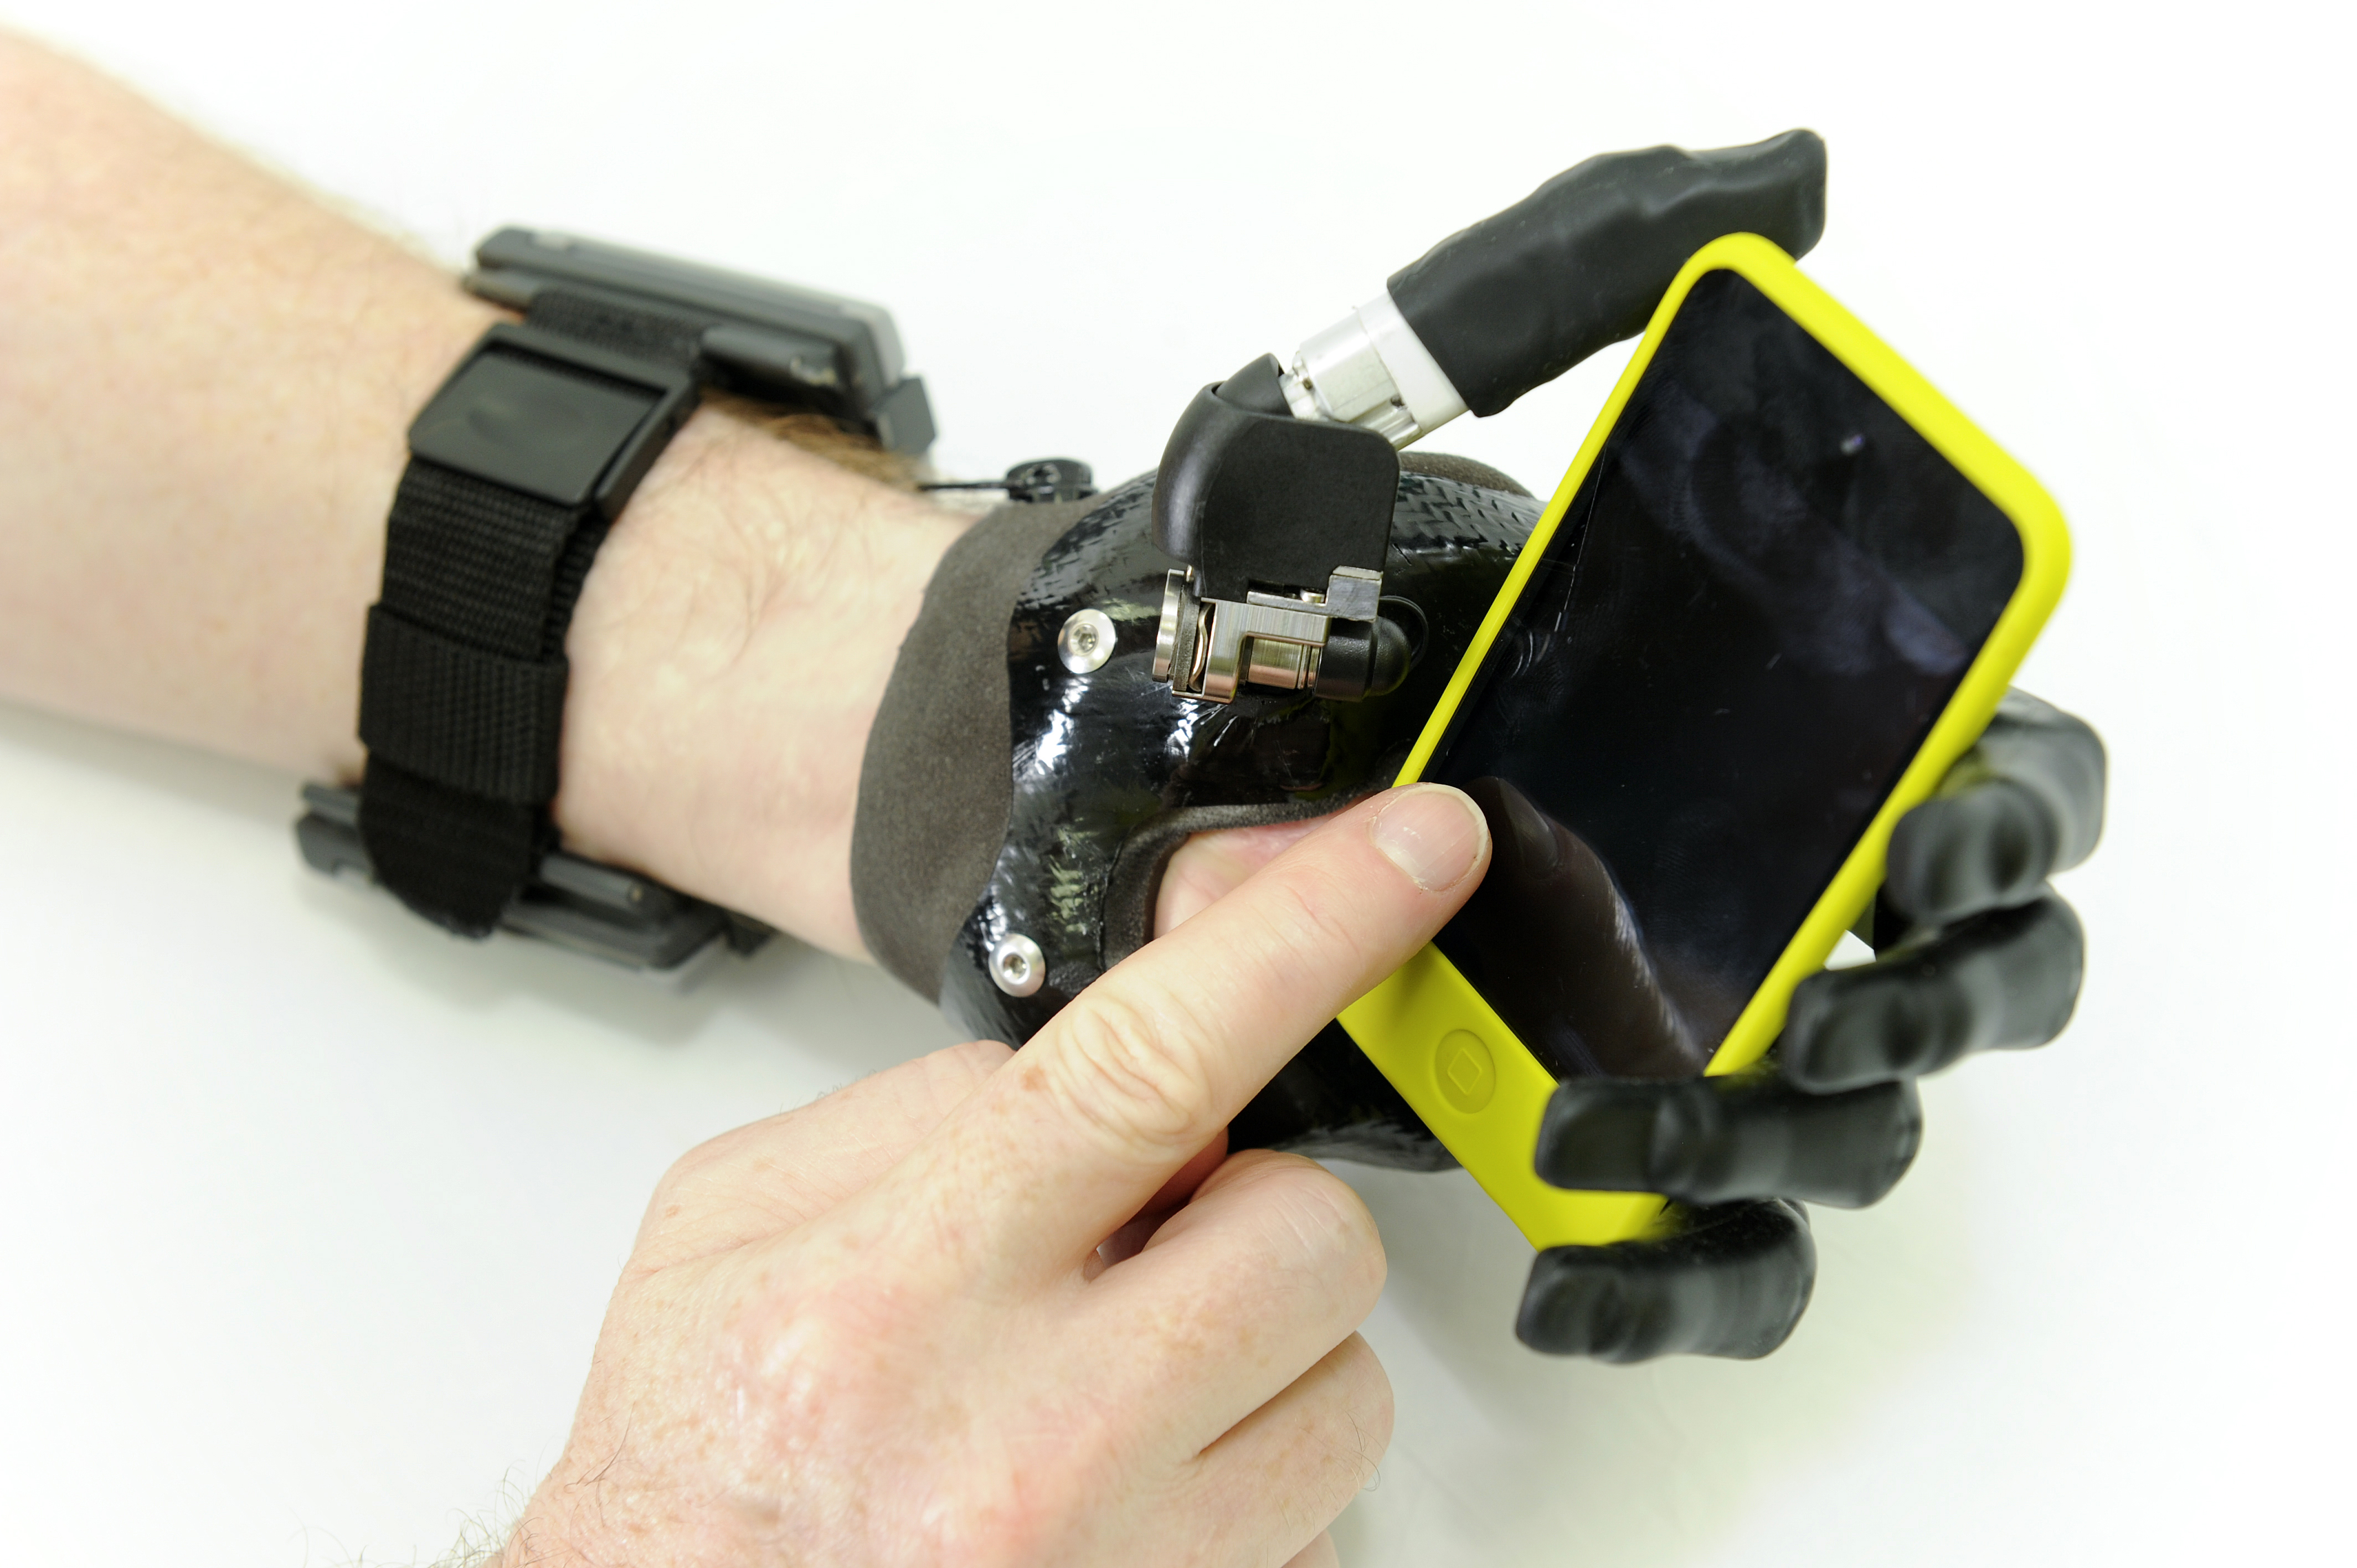 Holding a smartphone using  i-limb Digits